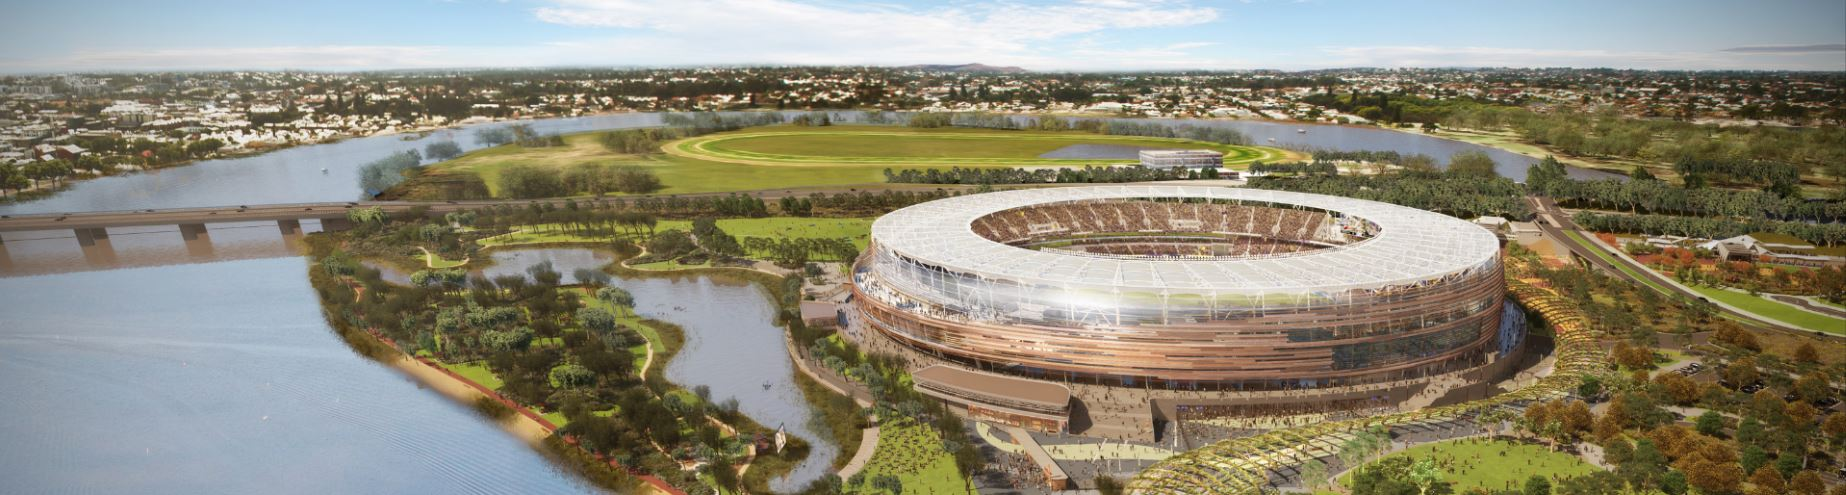 English Premier League Champions coming to the New Perth Stadium